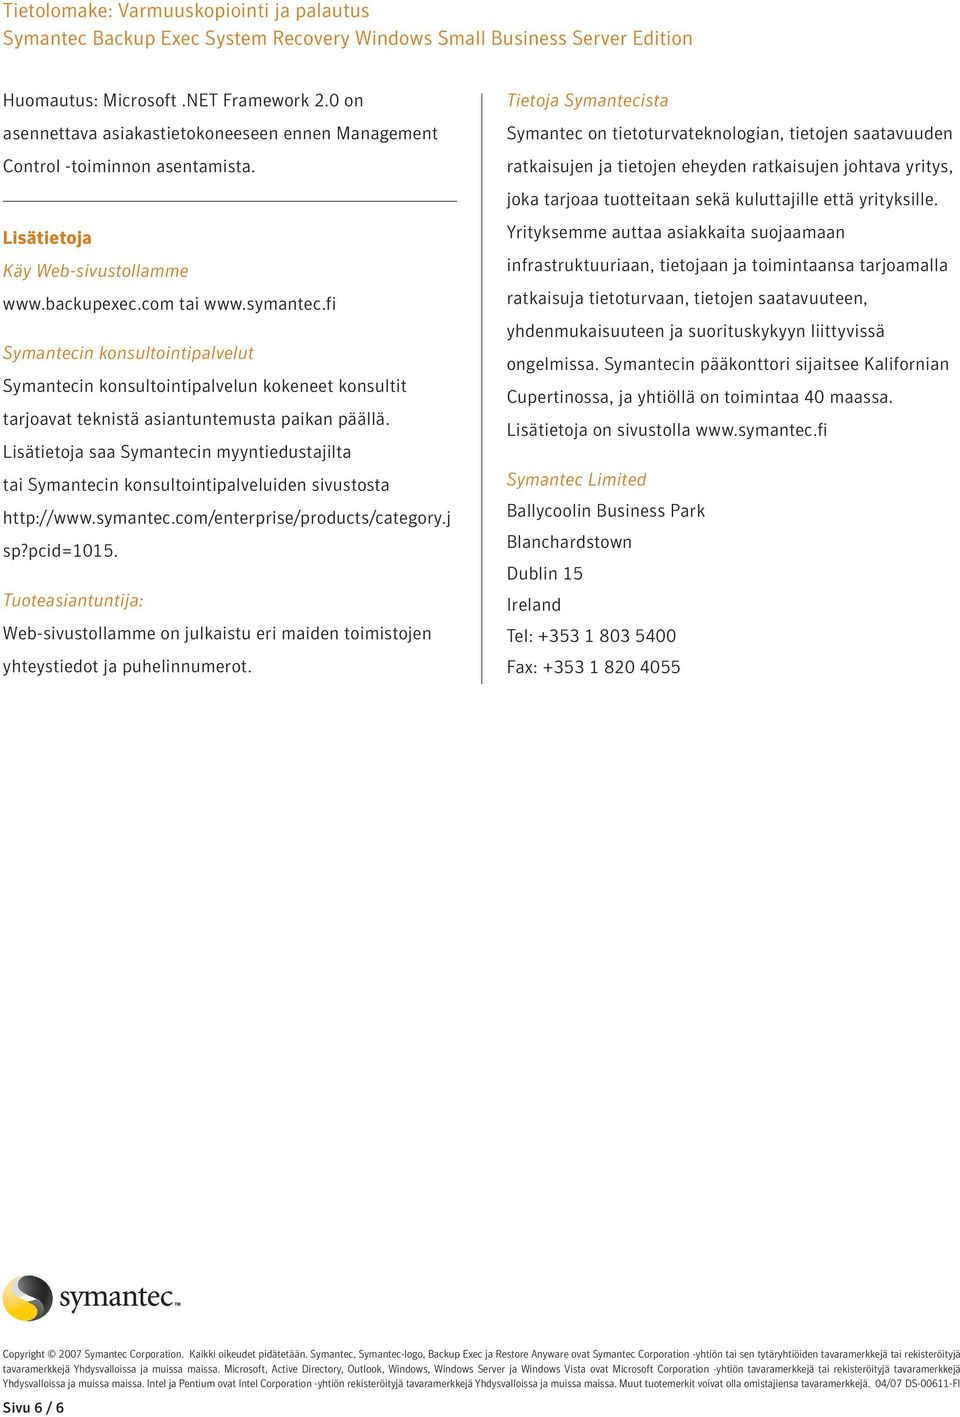 Lisätietoja saa Symantecin myyntiedustajilta tai Symantecin konsultointipalveluiden sivustosta http://www.symantec.com/enterprise/products/category.j sp?pcid=1015.